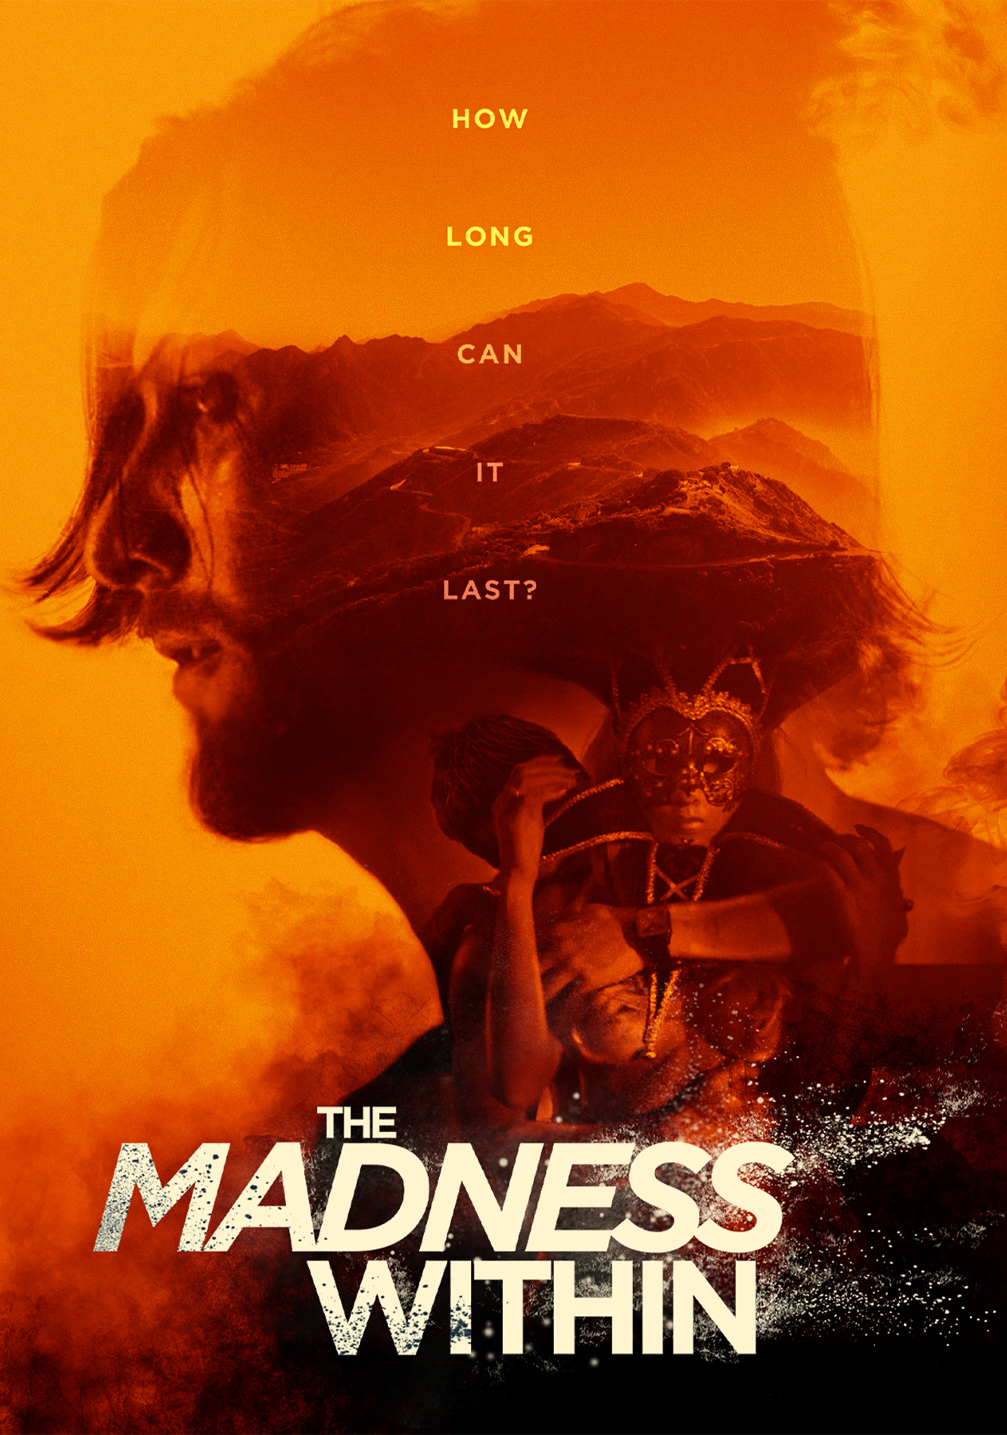 Download [18+] The Madness Within (2019) Full Movie In Hindi-English (Dual Audio) Web-DL 720p [850MB]